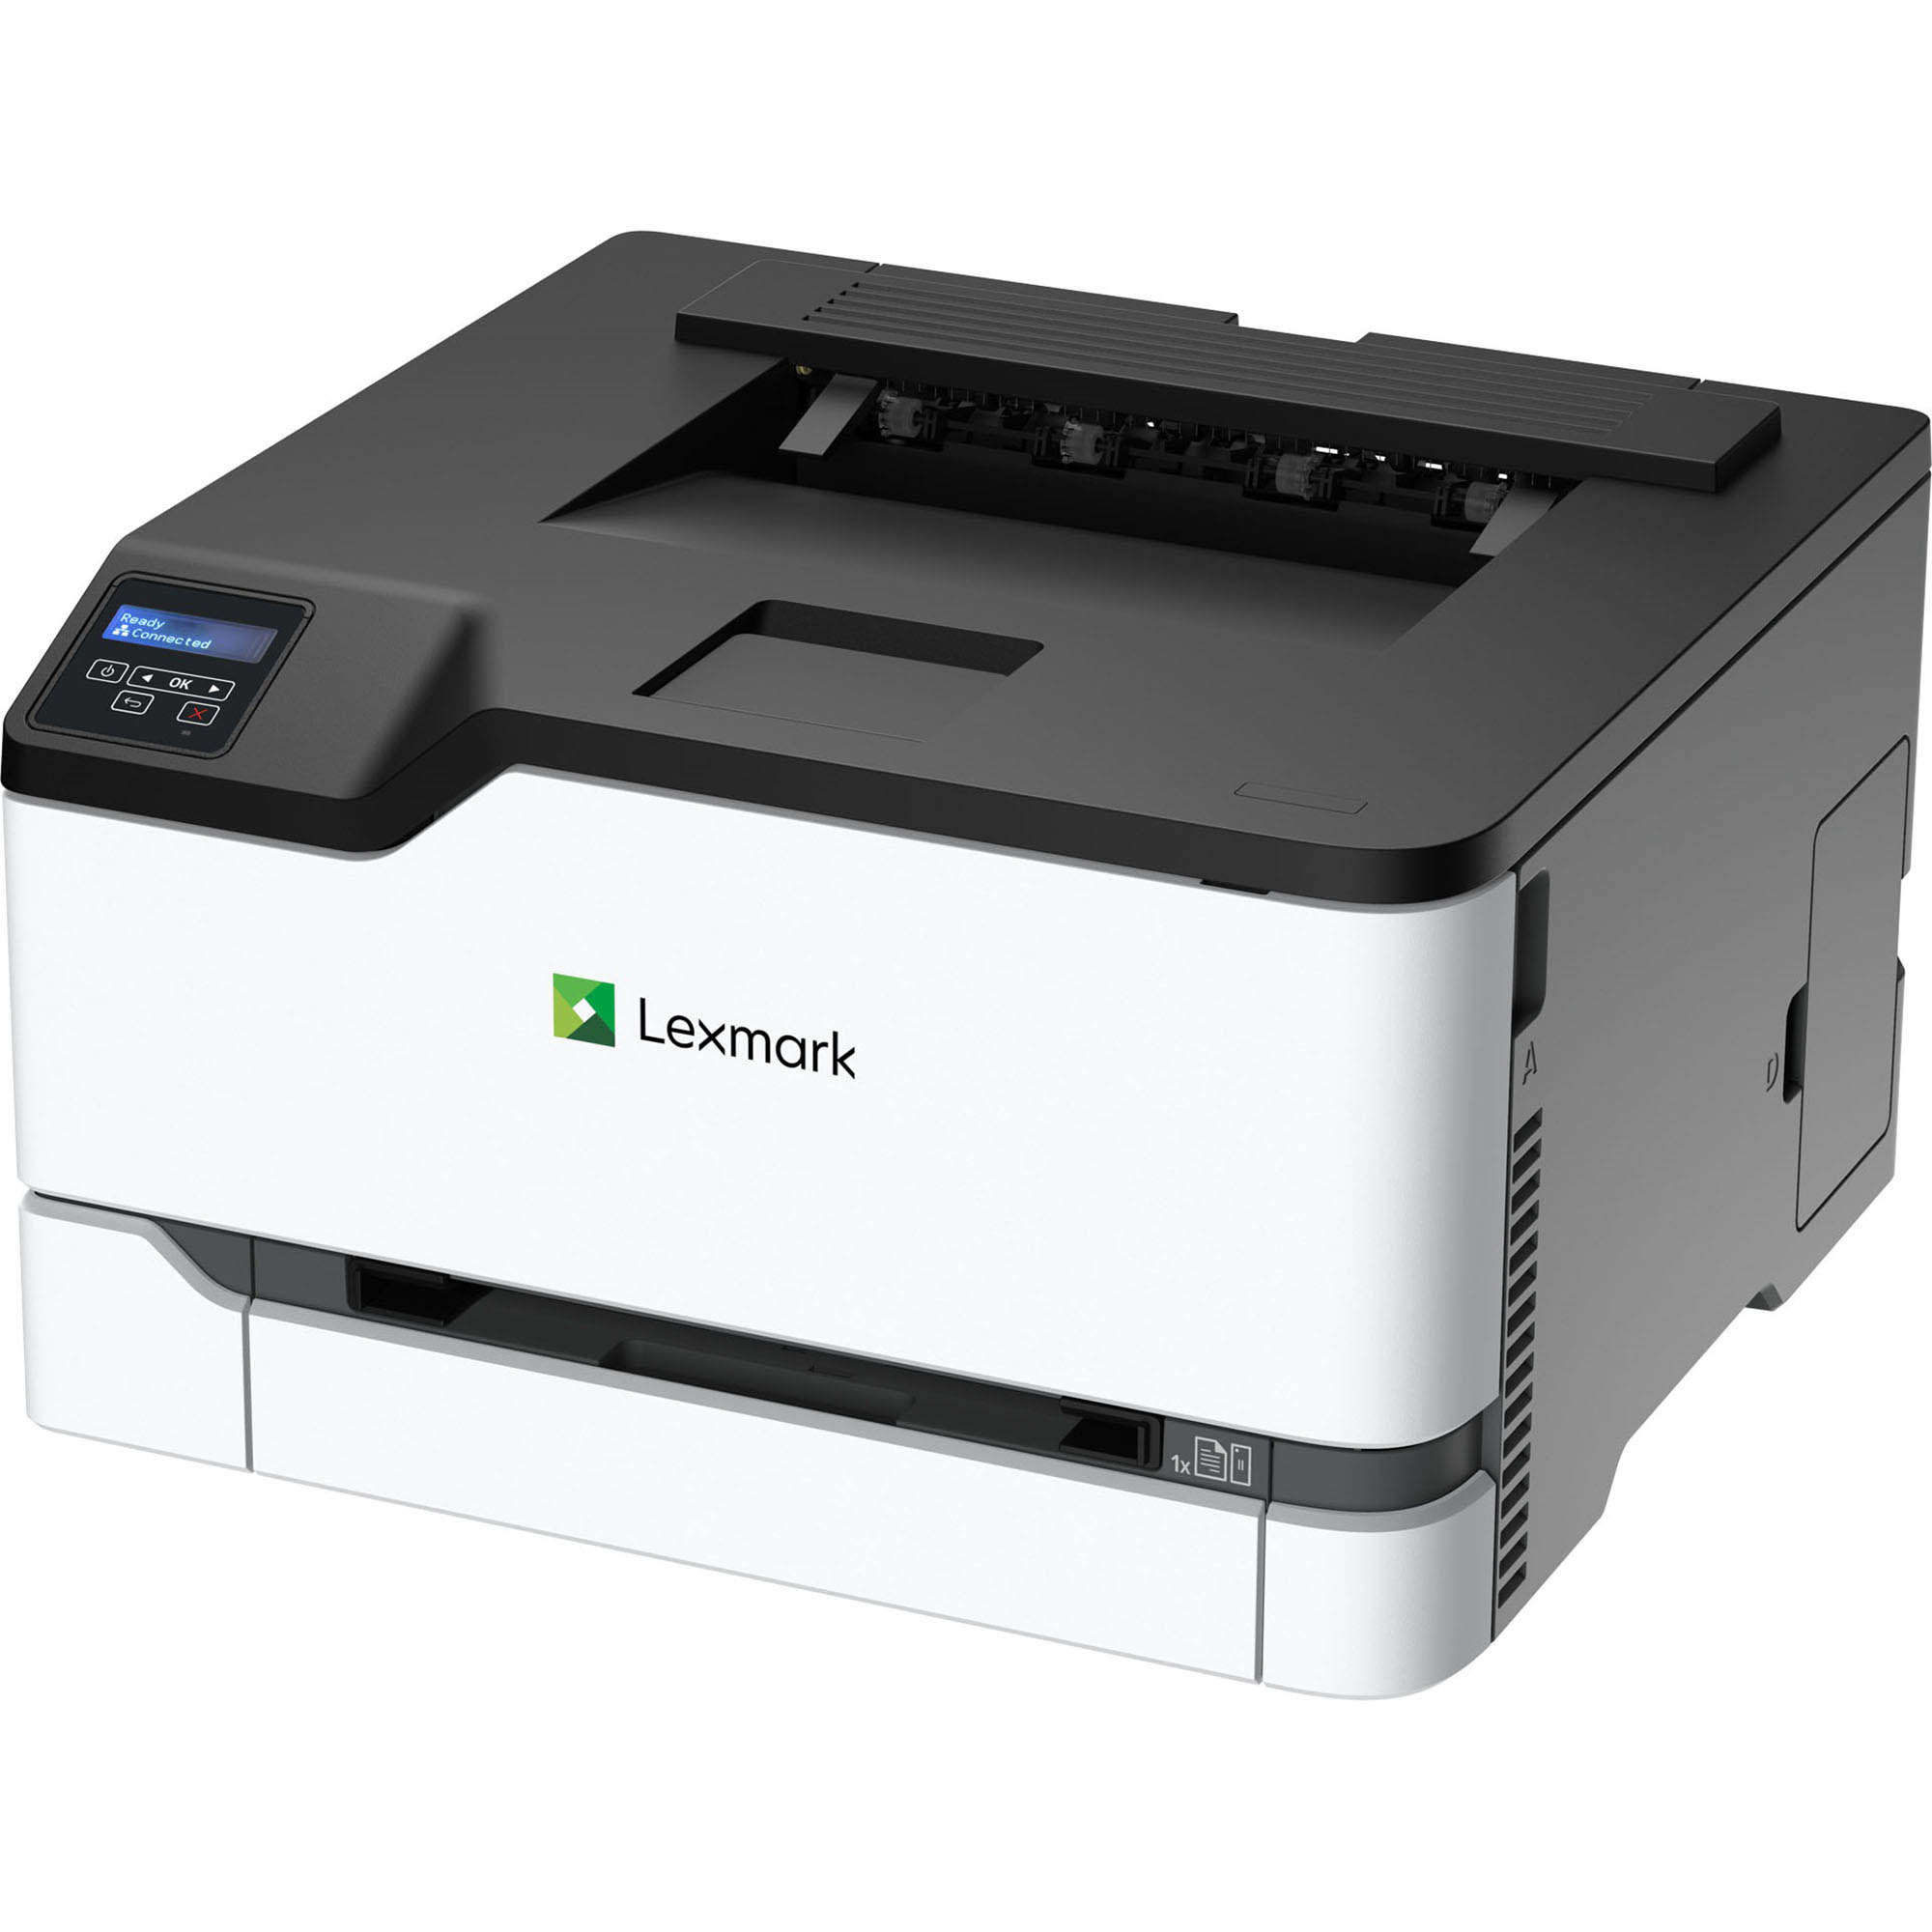 Image for LEXMARK GO LINE C3326DW COLOUR LASER PRINTER A4 from Memo Office and Art